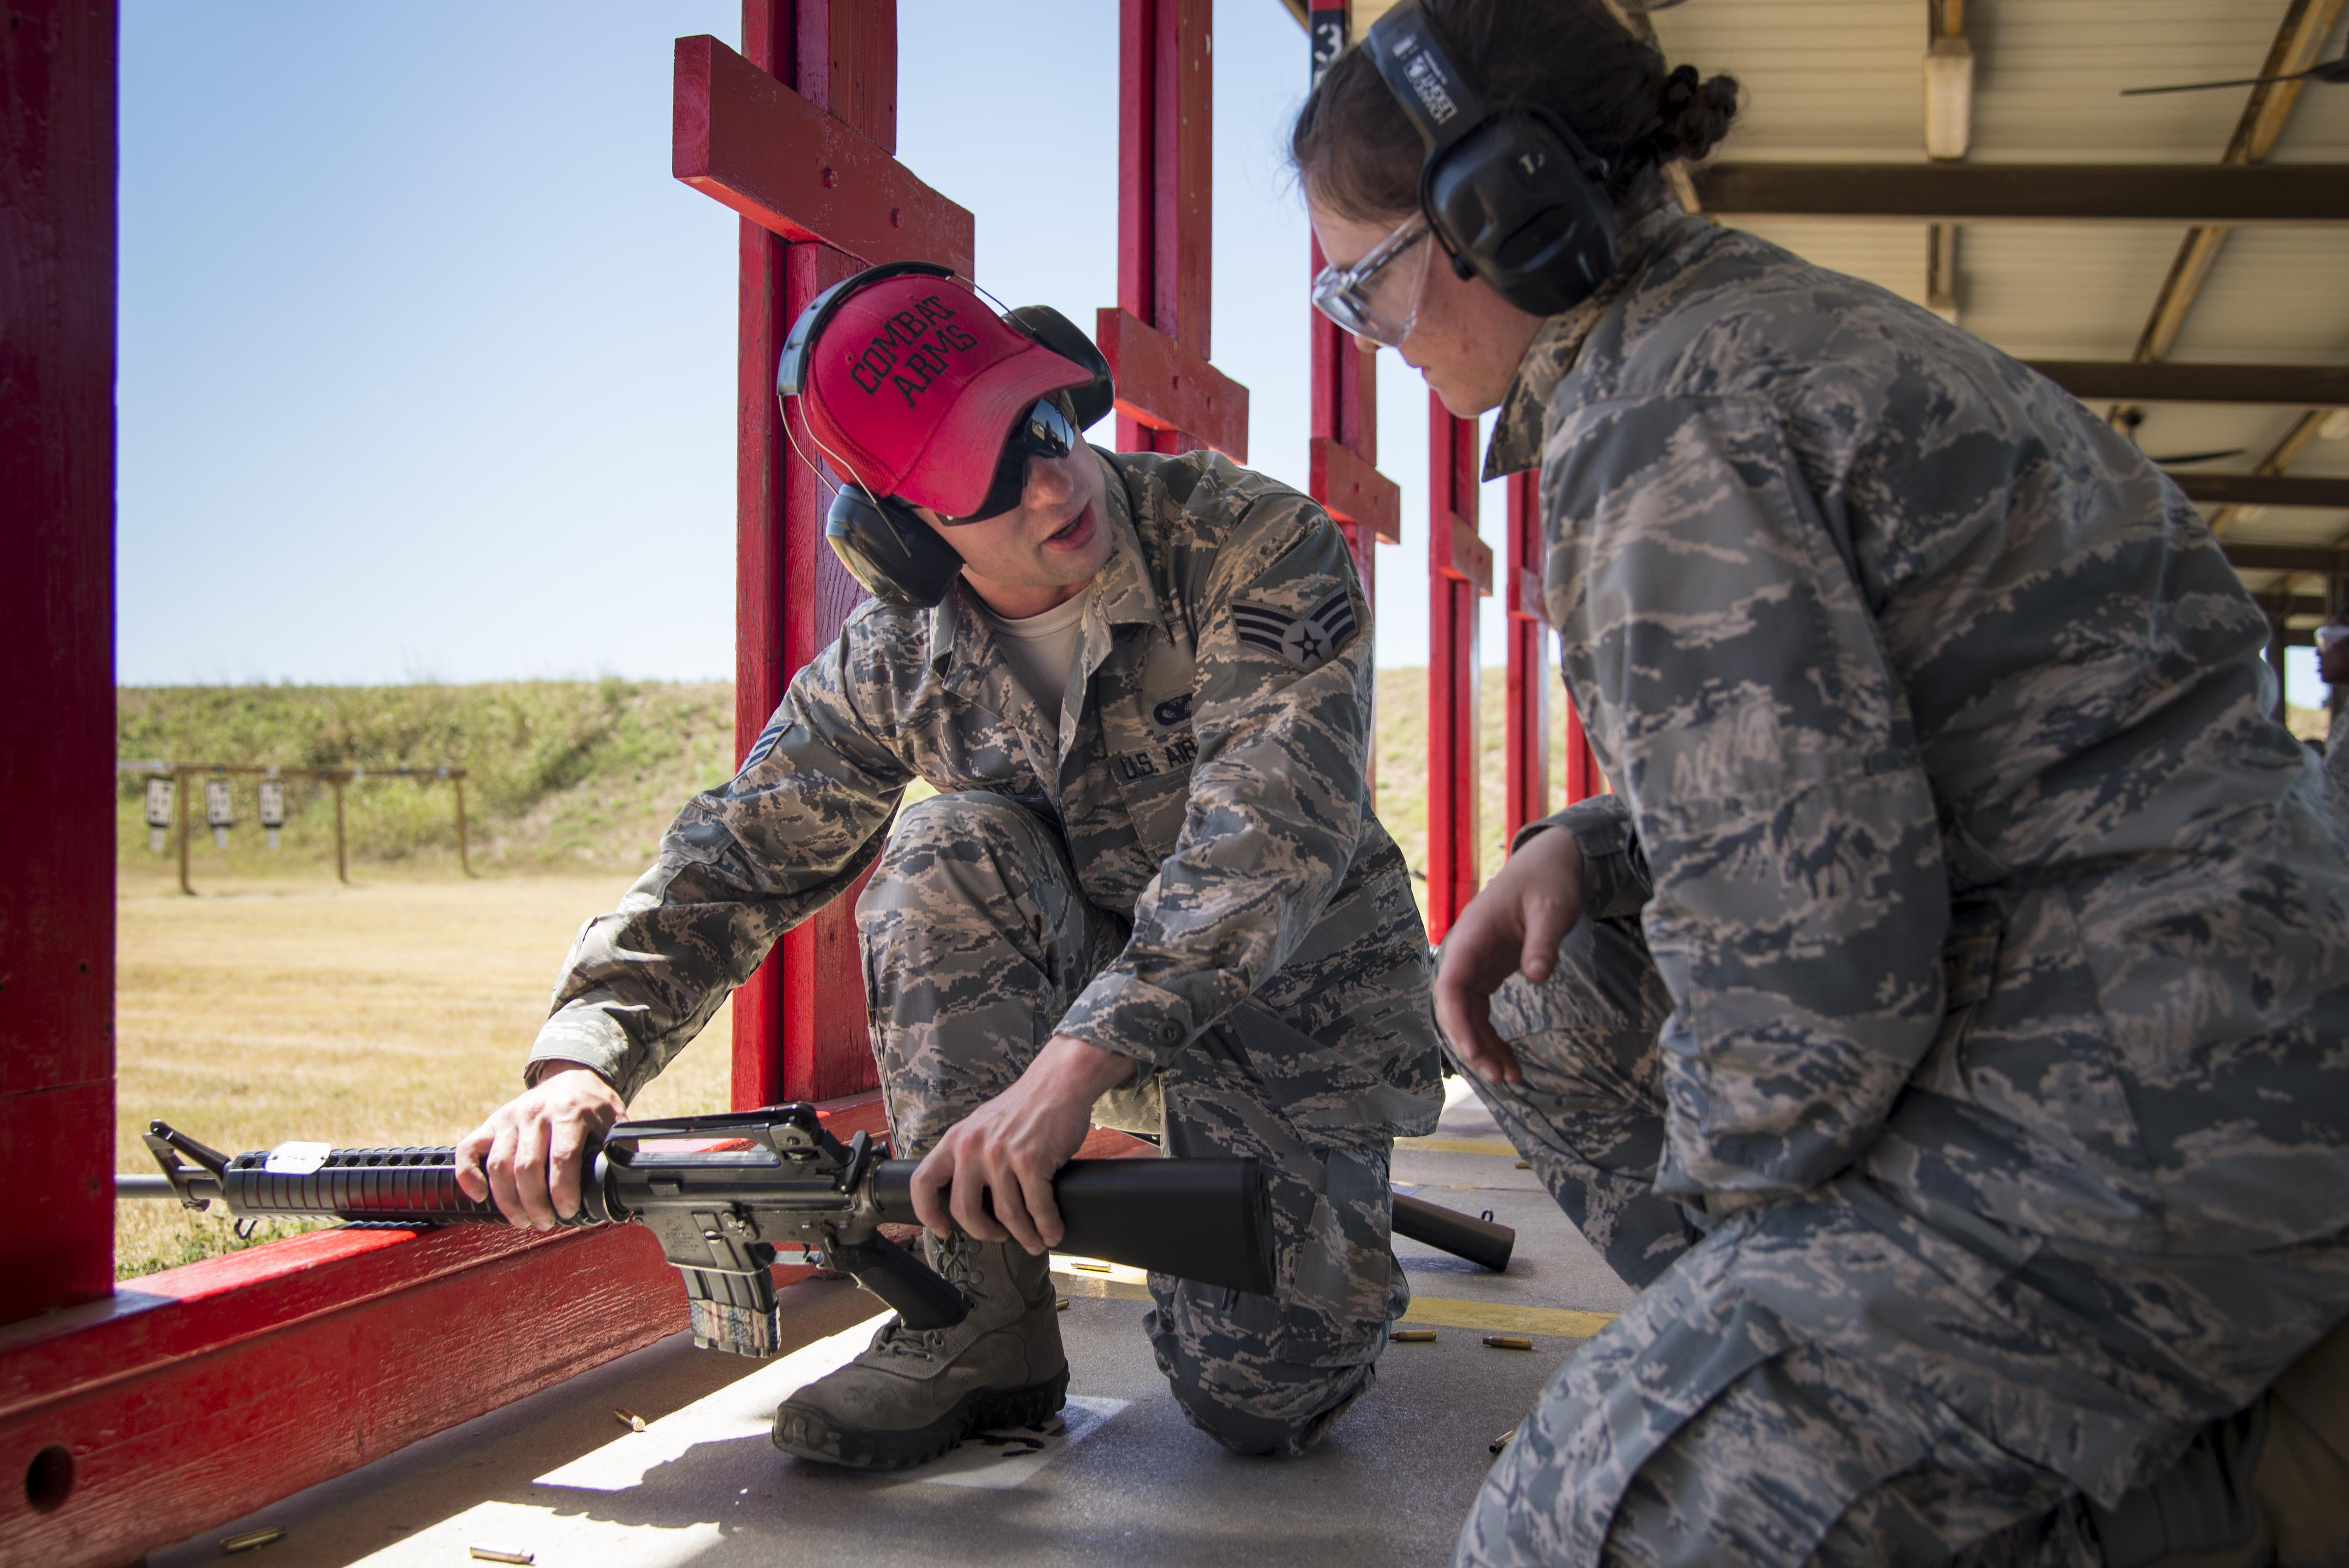 Catm Instructor Returns To Jbsa Trains Next Generation Of